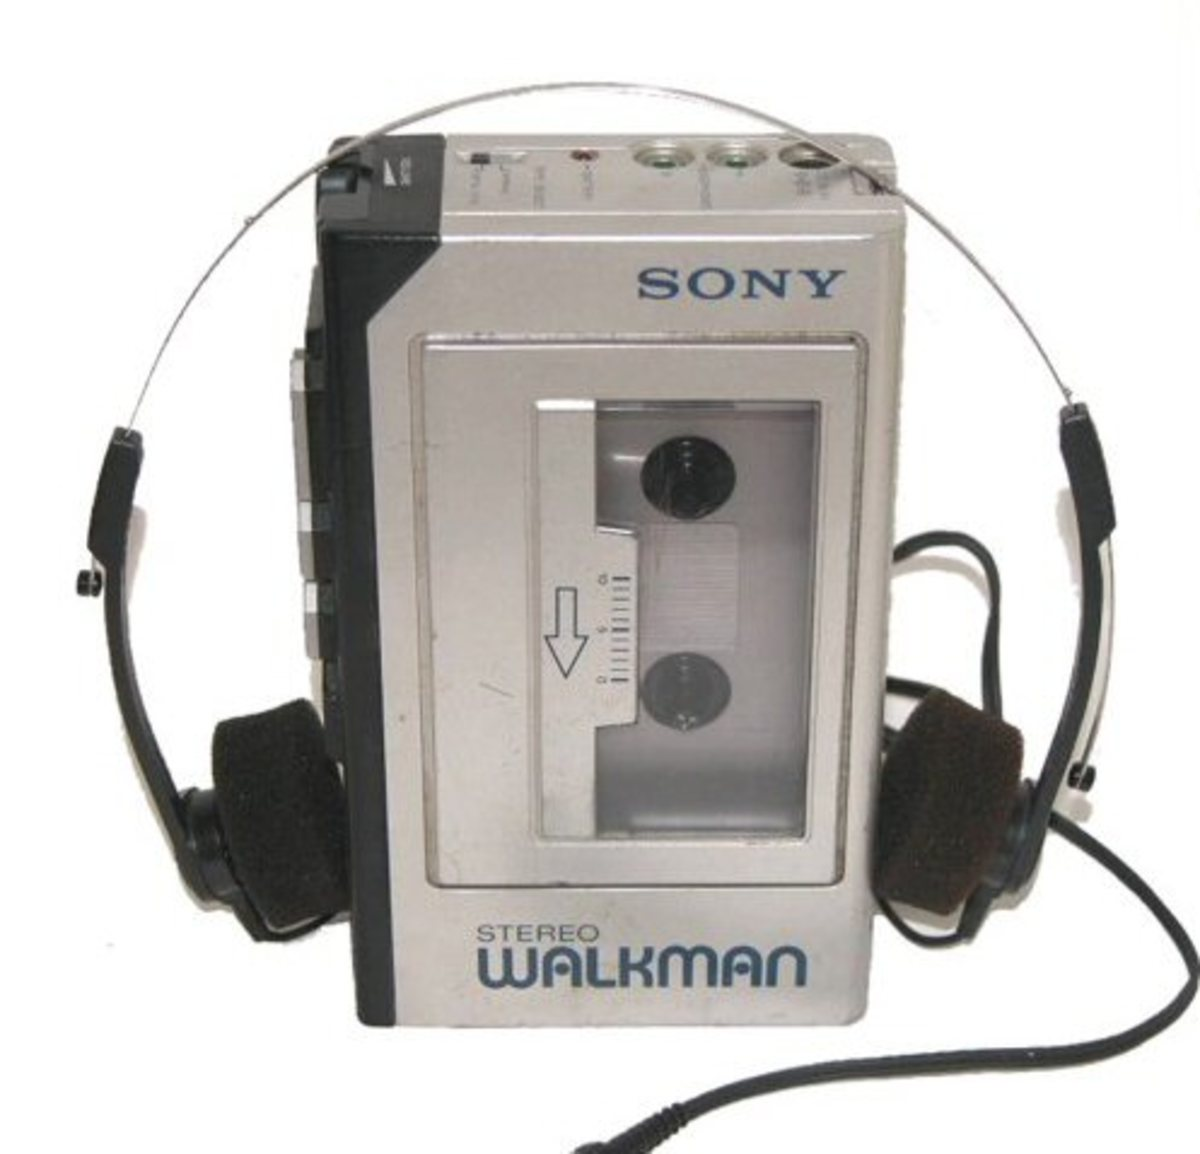 Before the iPod, there was the Walkman